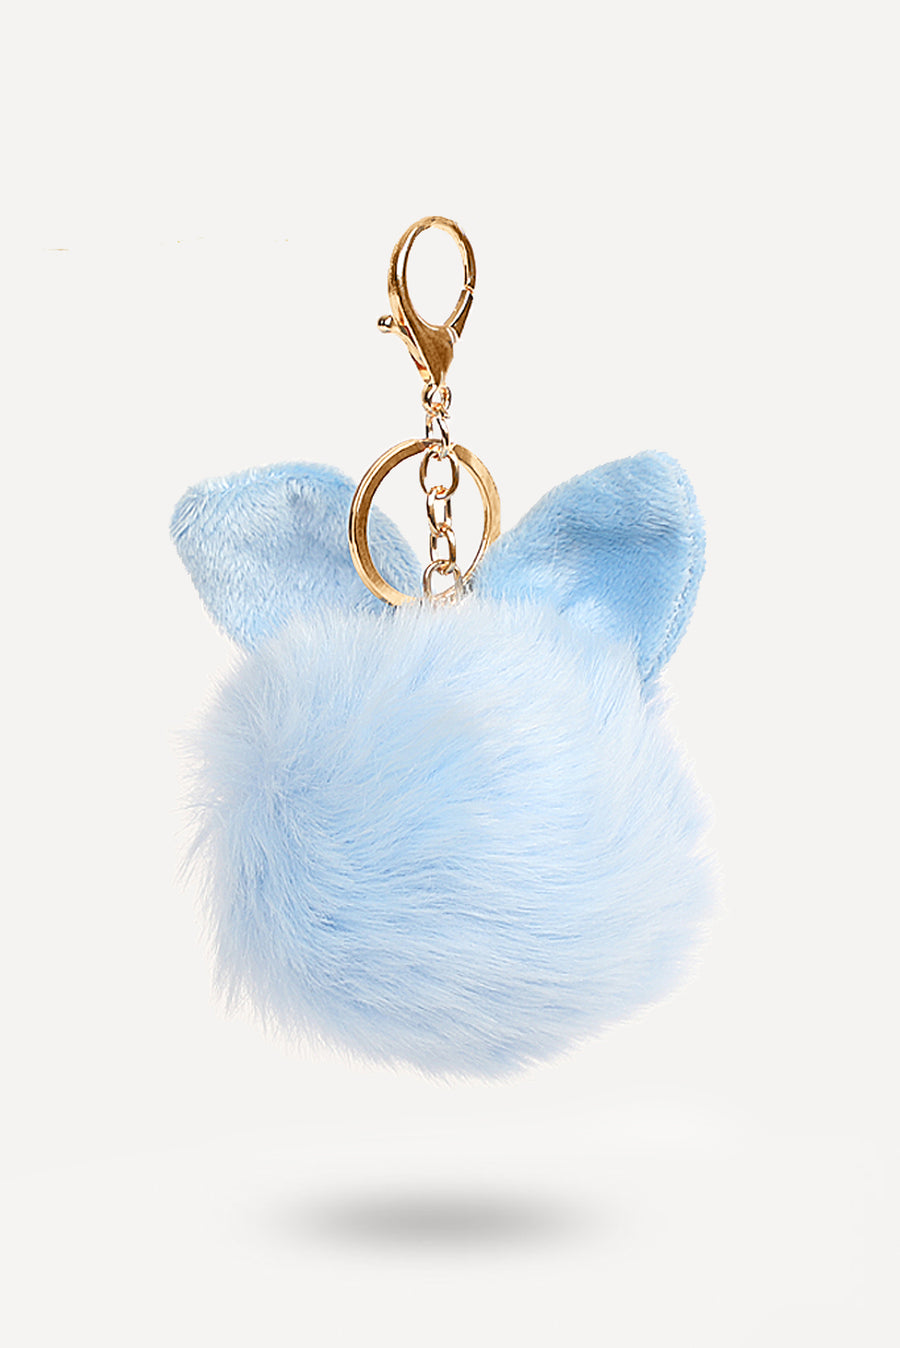 Blue Bunny-Ear Fur Ball - nobby